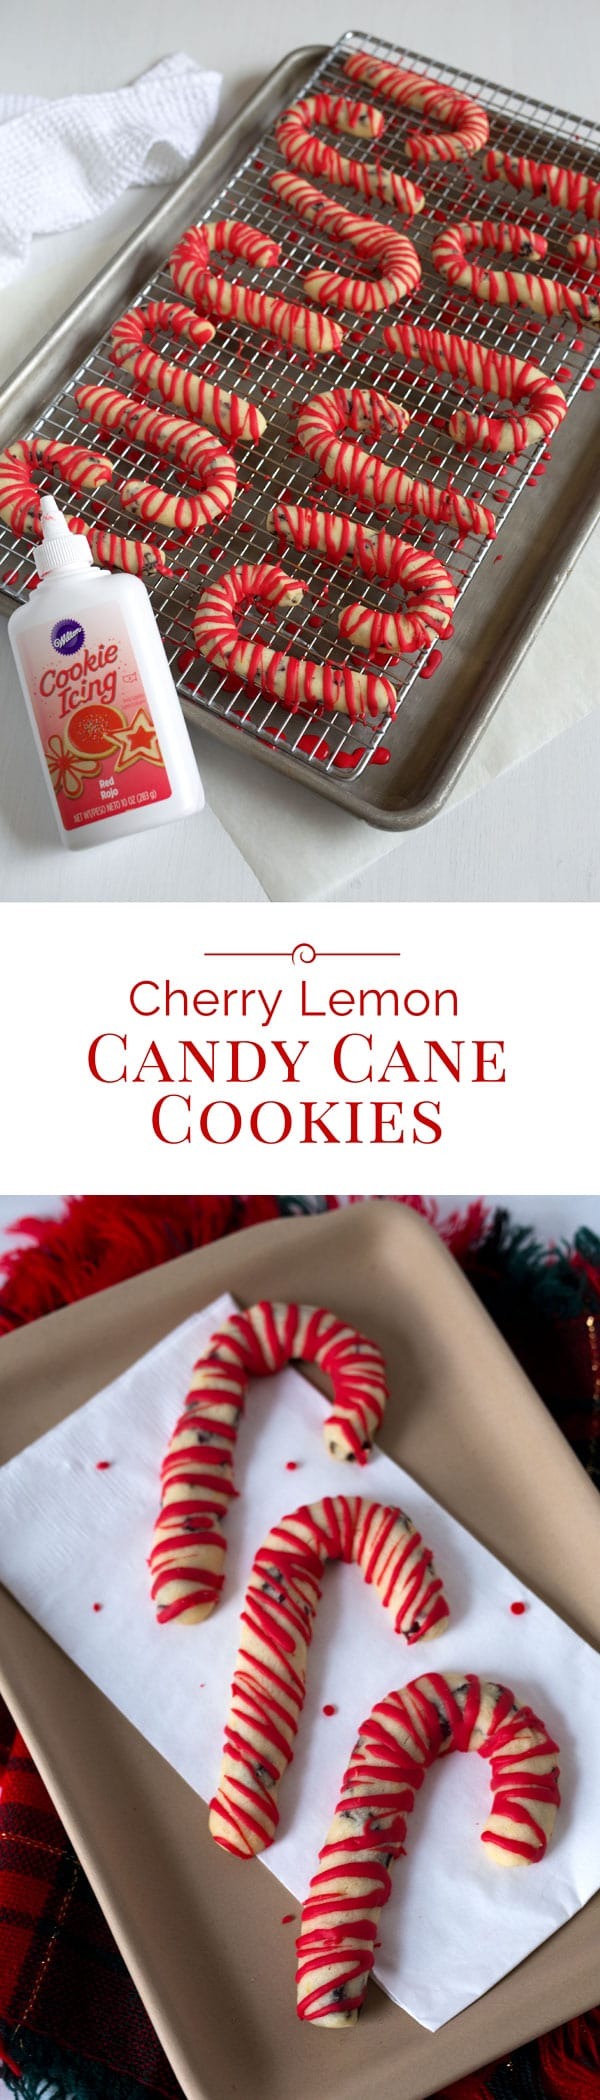 Cherry-Lemon-Candy-Cane-Cookies-Collage-2-Barbara-Bakes